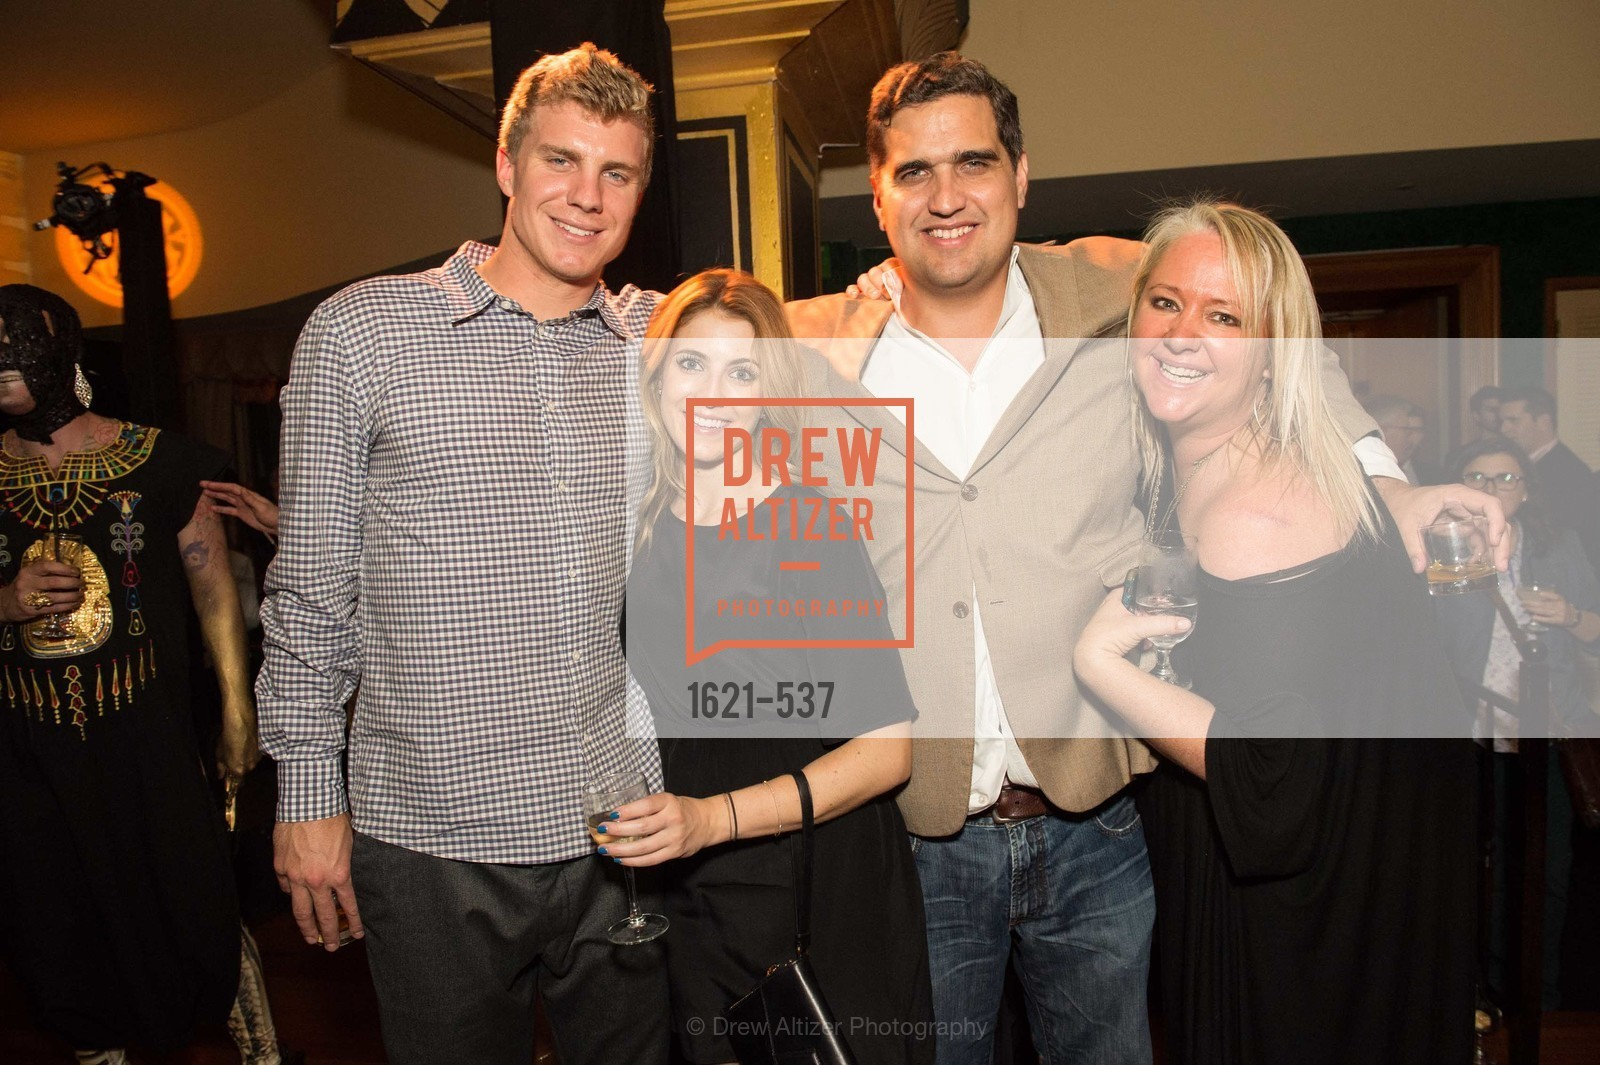 Nate Montana, Ashley Fields, Peter Stern, Lori Puccinelli Stern, TOP OF THE MARK'S 75TH Anniversary Party, US, November 6th, 2014,Drew Altizer, Drew Altizer Photography, full-service agency, private events, San Francisco photographer, photographer california